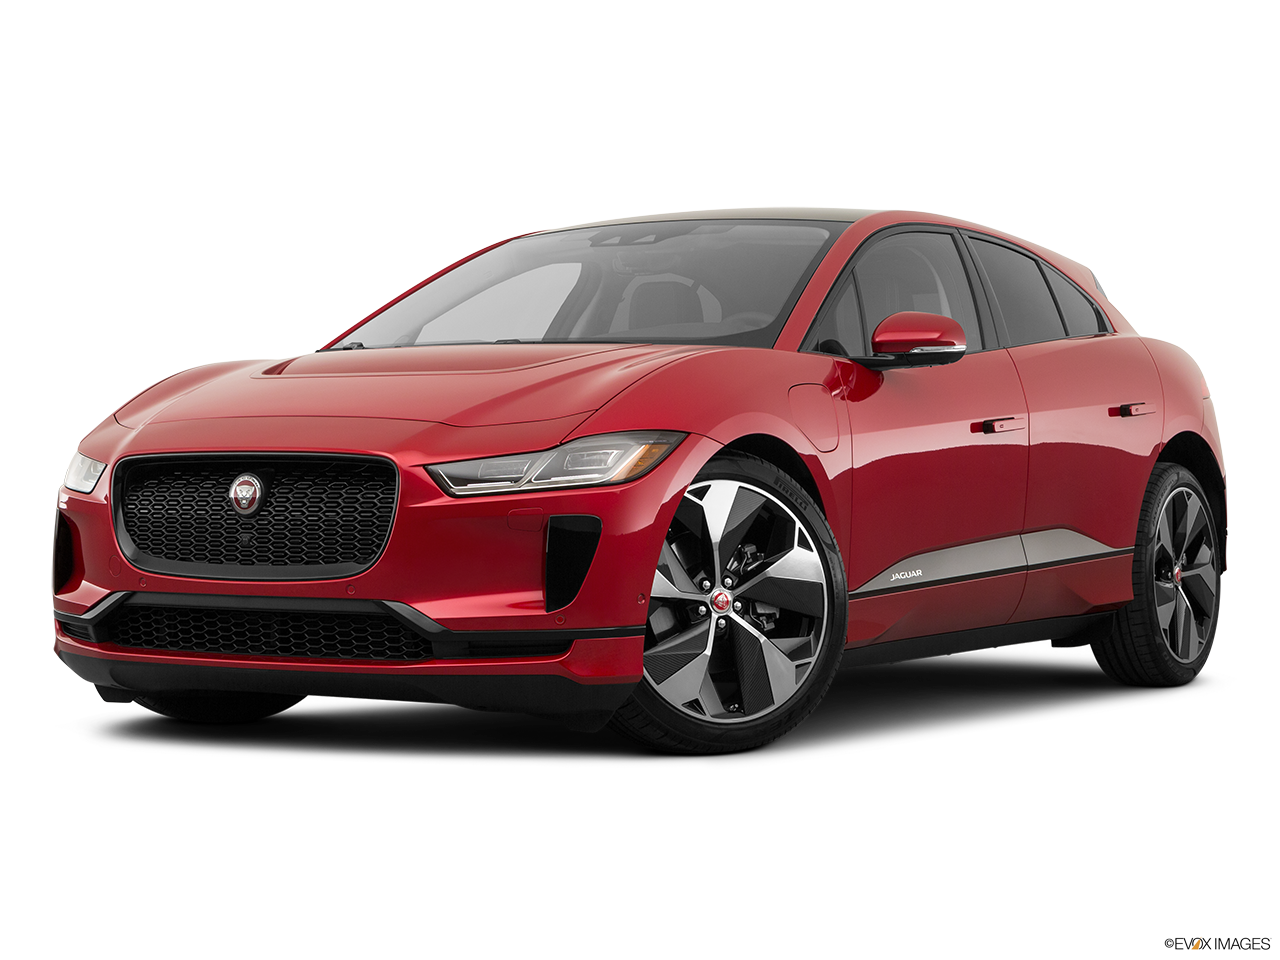 Three quart view of the Jaguar I-Pace